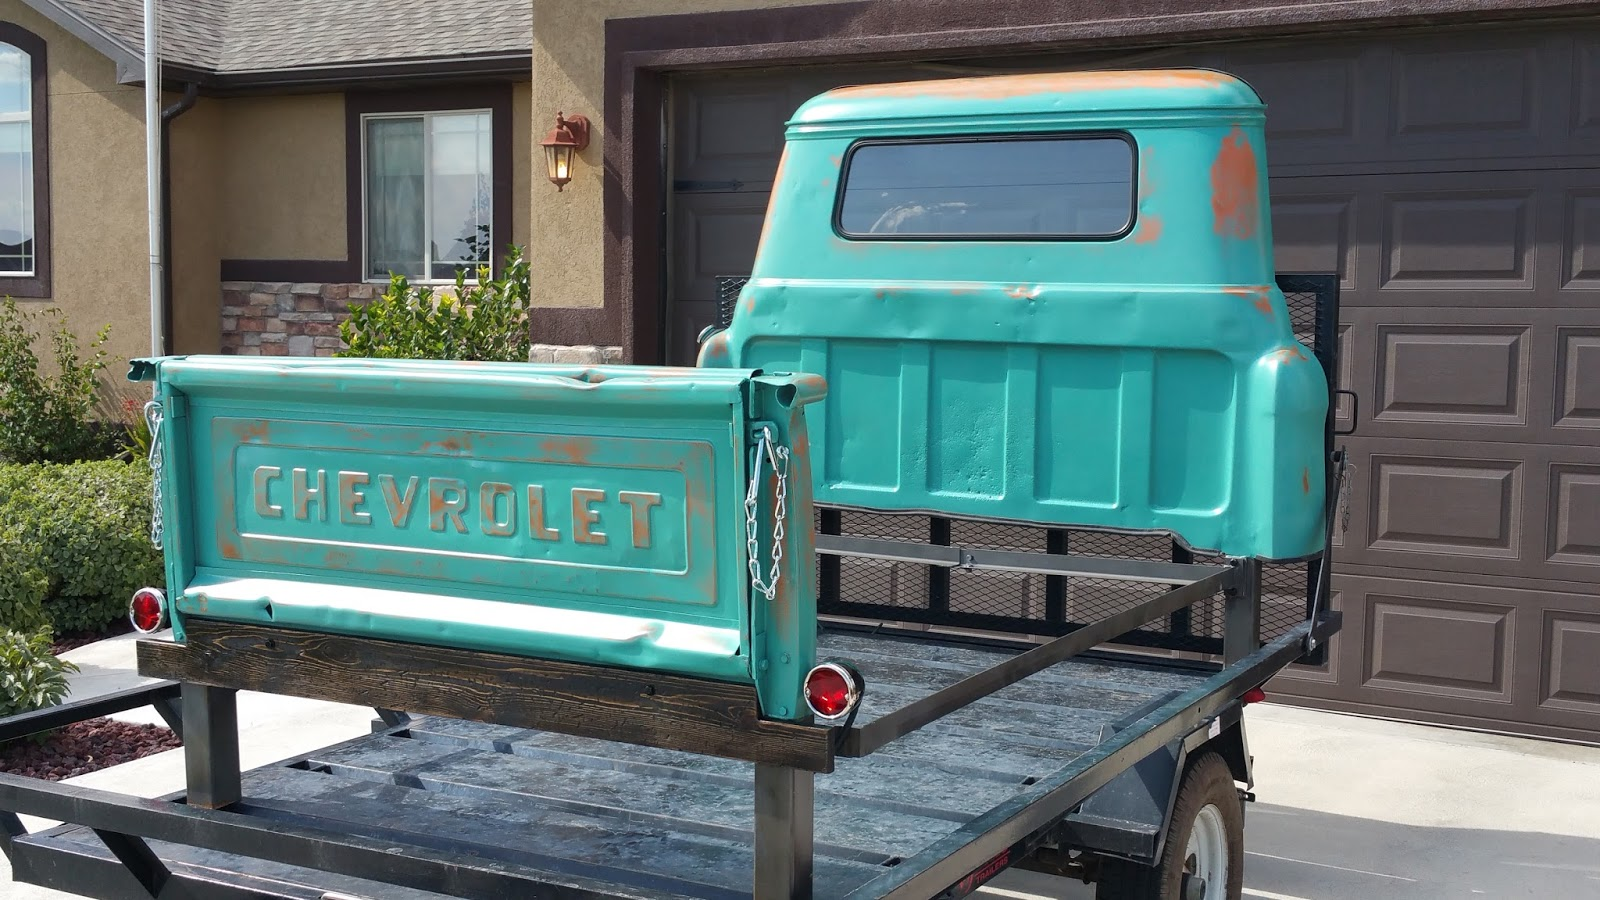 tailgate customs queen size 1958 chevrolet pickup truck bed available. Black Bedroom Furniture Sets. Home Design Ideas